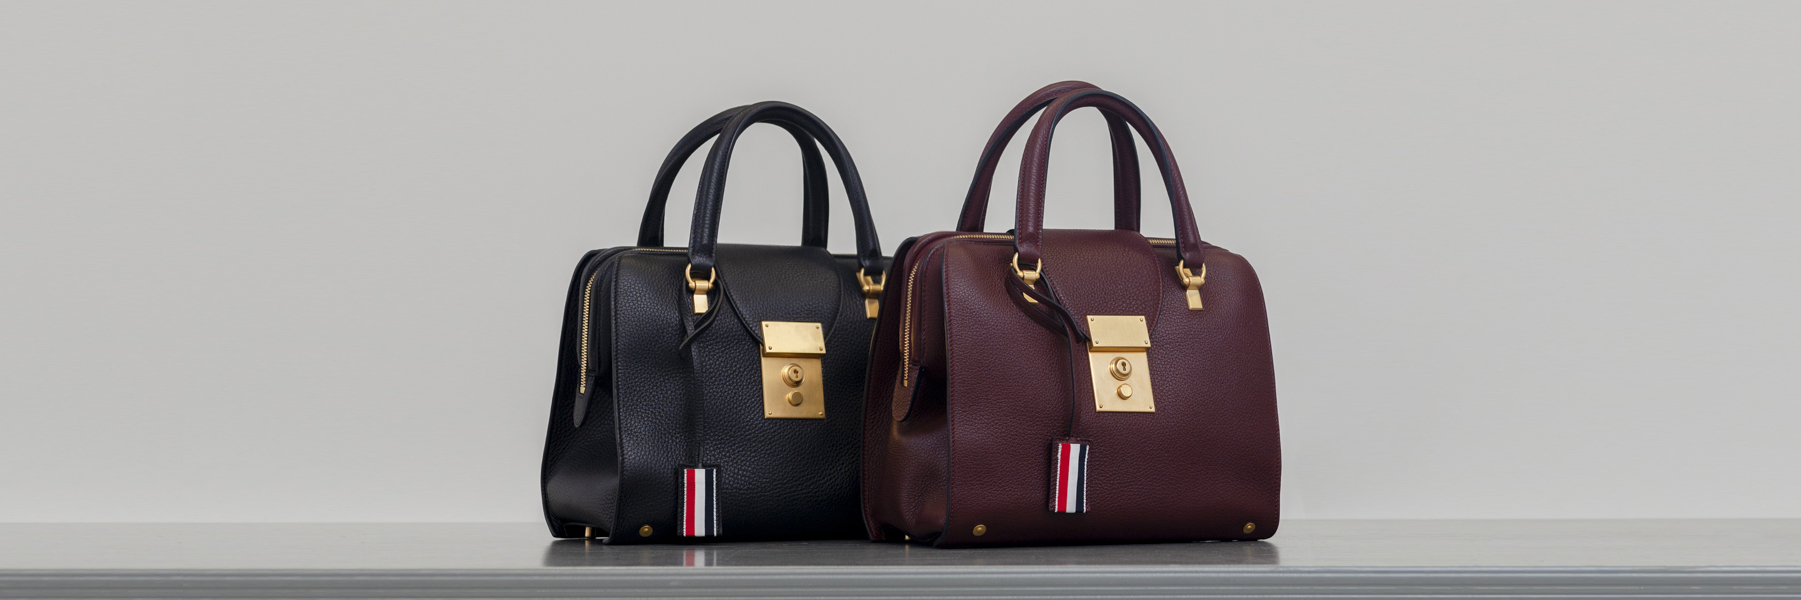 Shop Thom Browne Bags and Leather Goods